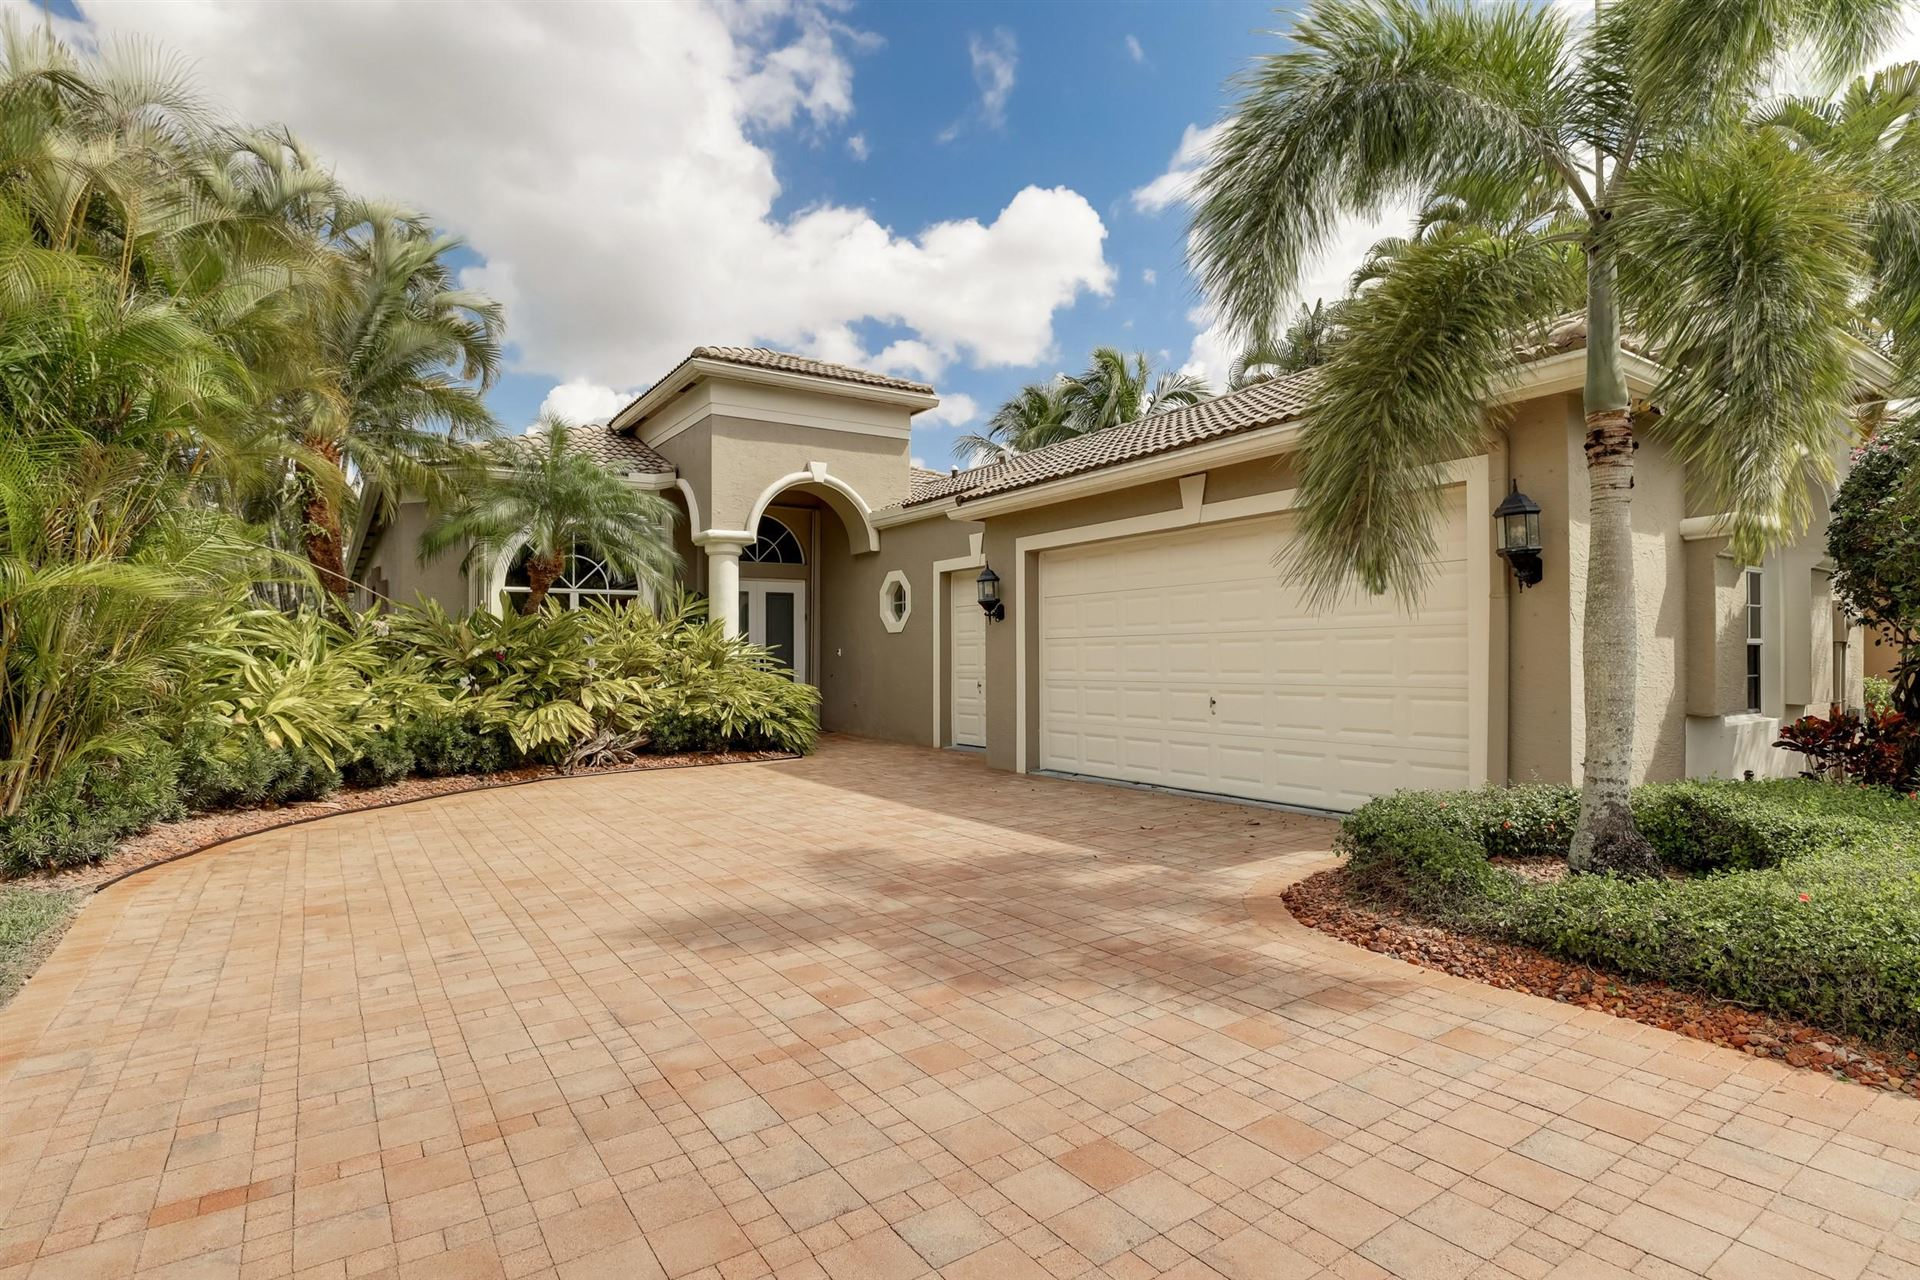 Photo of 4082 Manchester Lake Drive, Lake Worth, FL 33449 (MLS # RX-10695670)